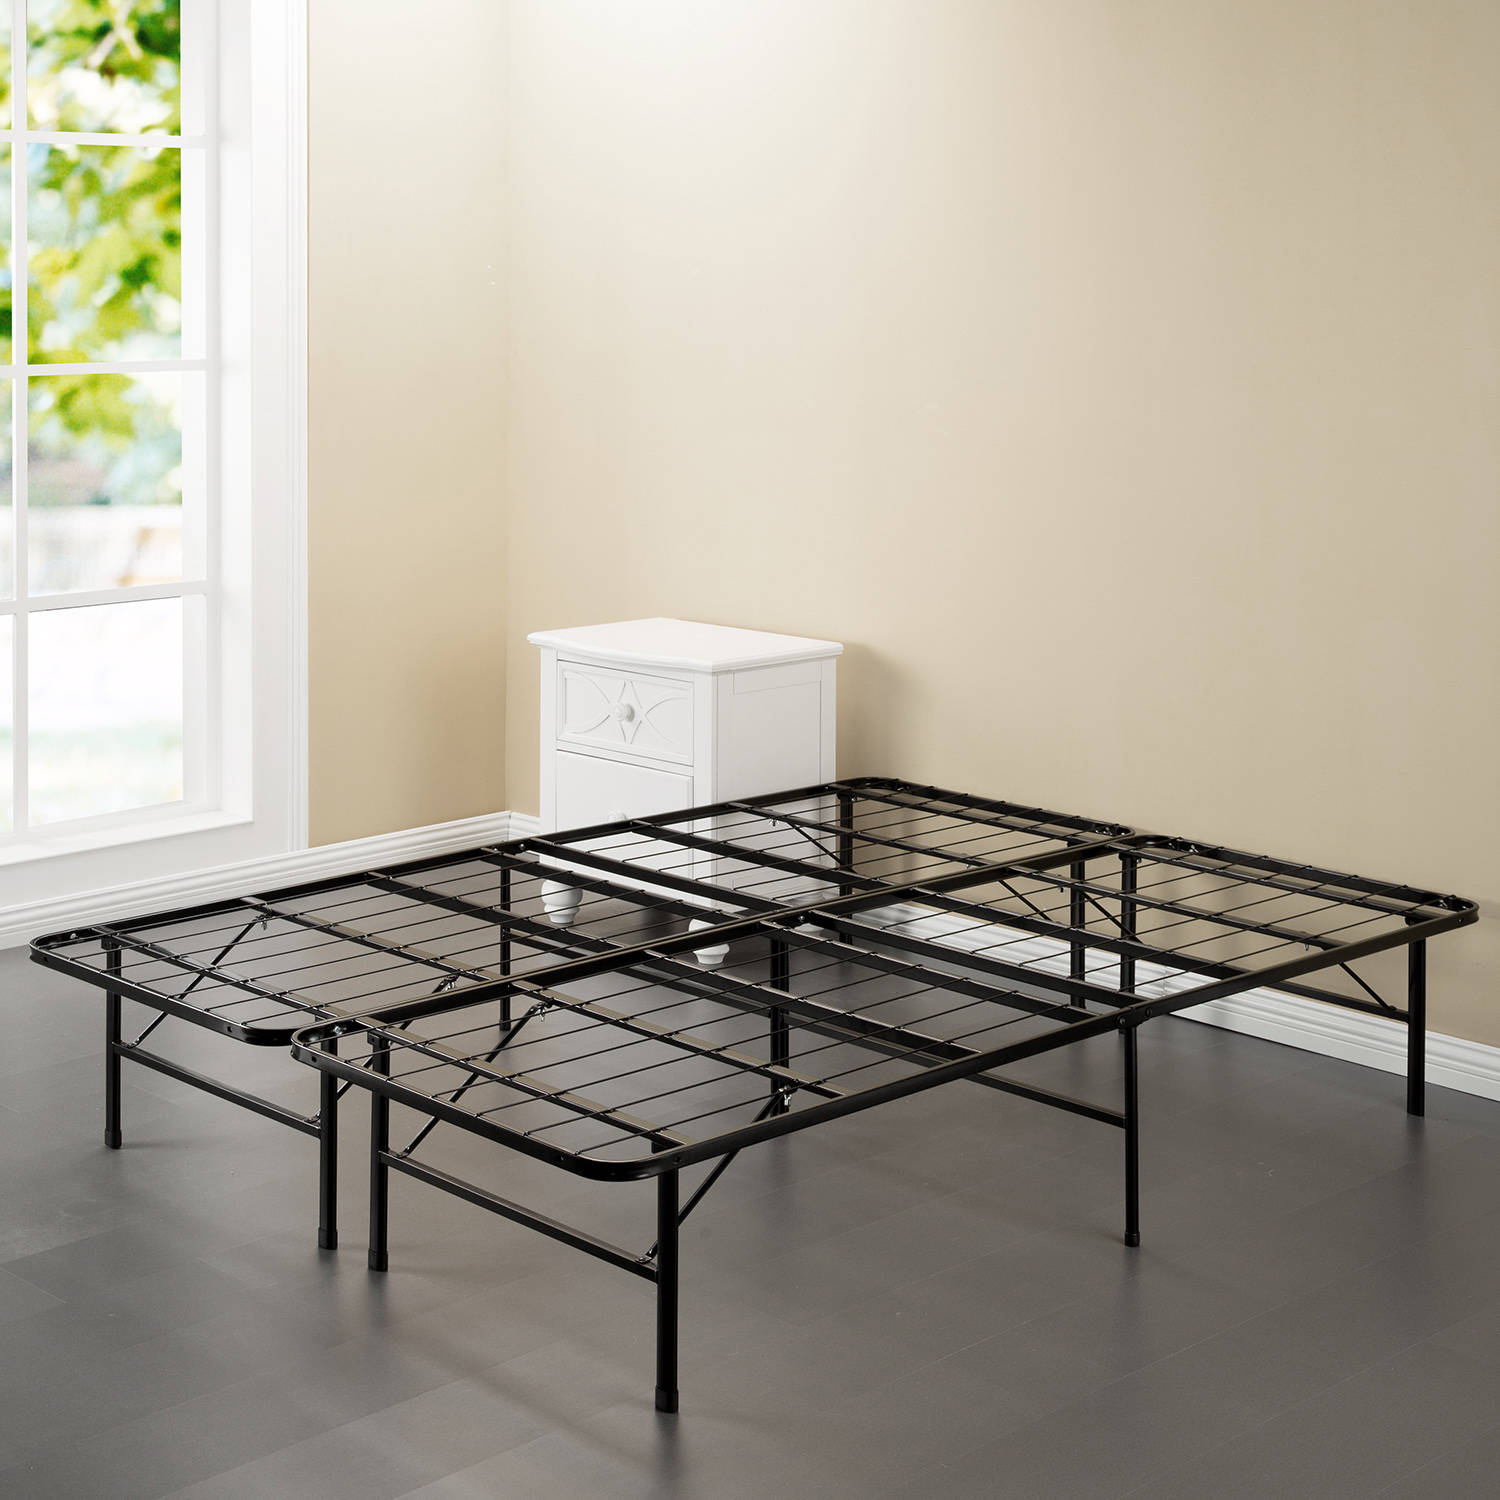 spa sensations steel smart base bed frame black multiple sizes walmartcom - Metal Frame Twin Bed